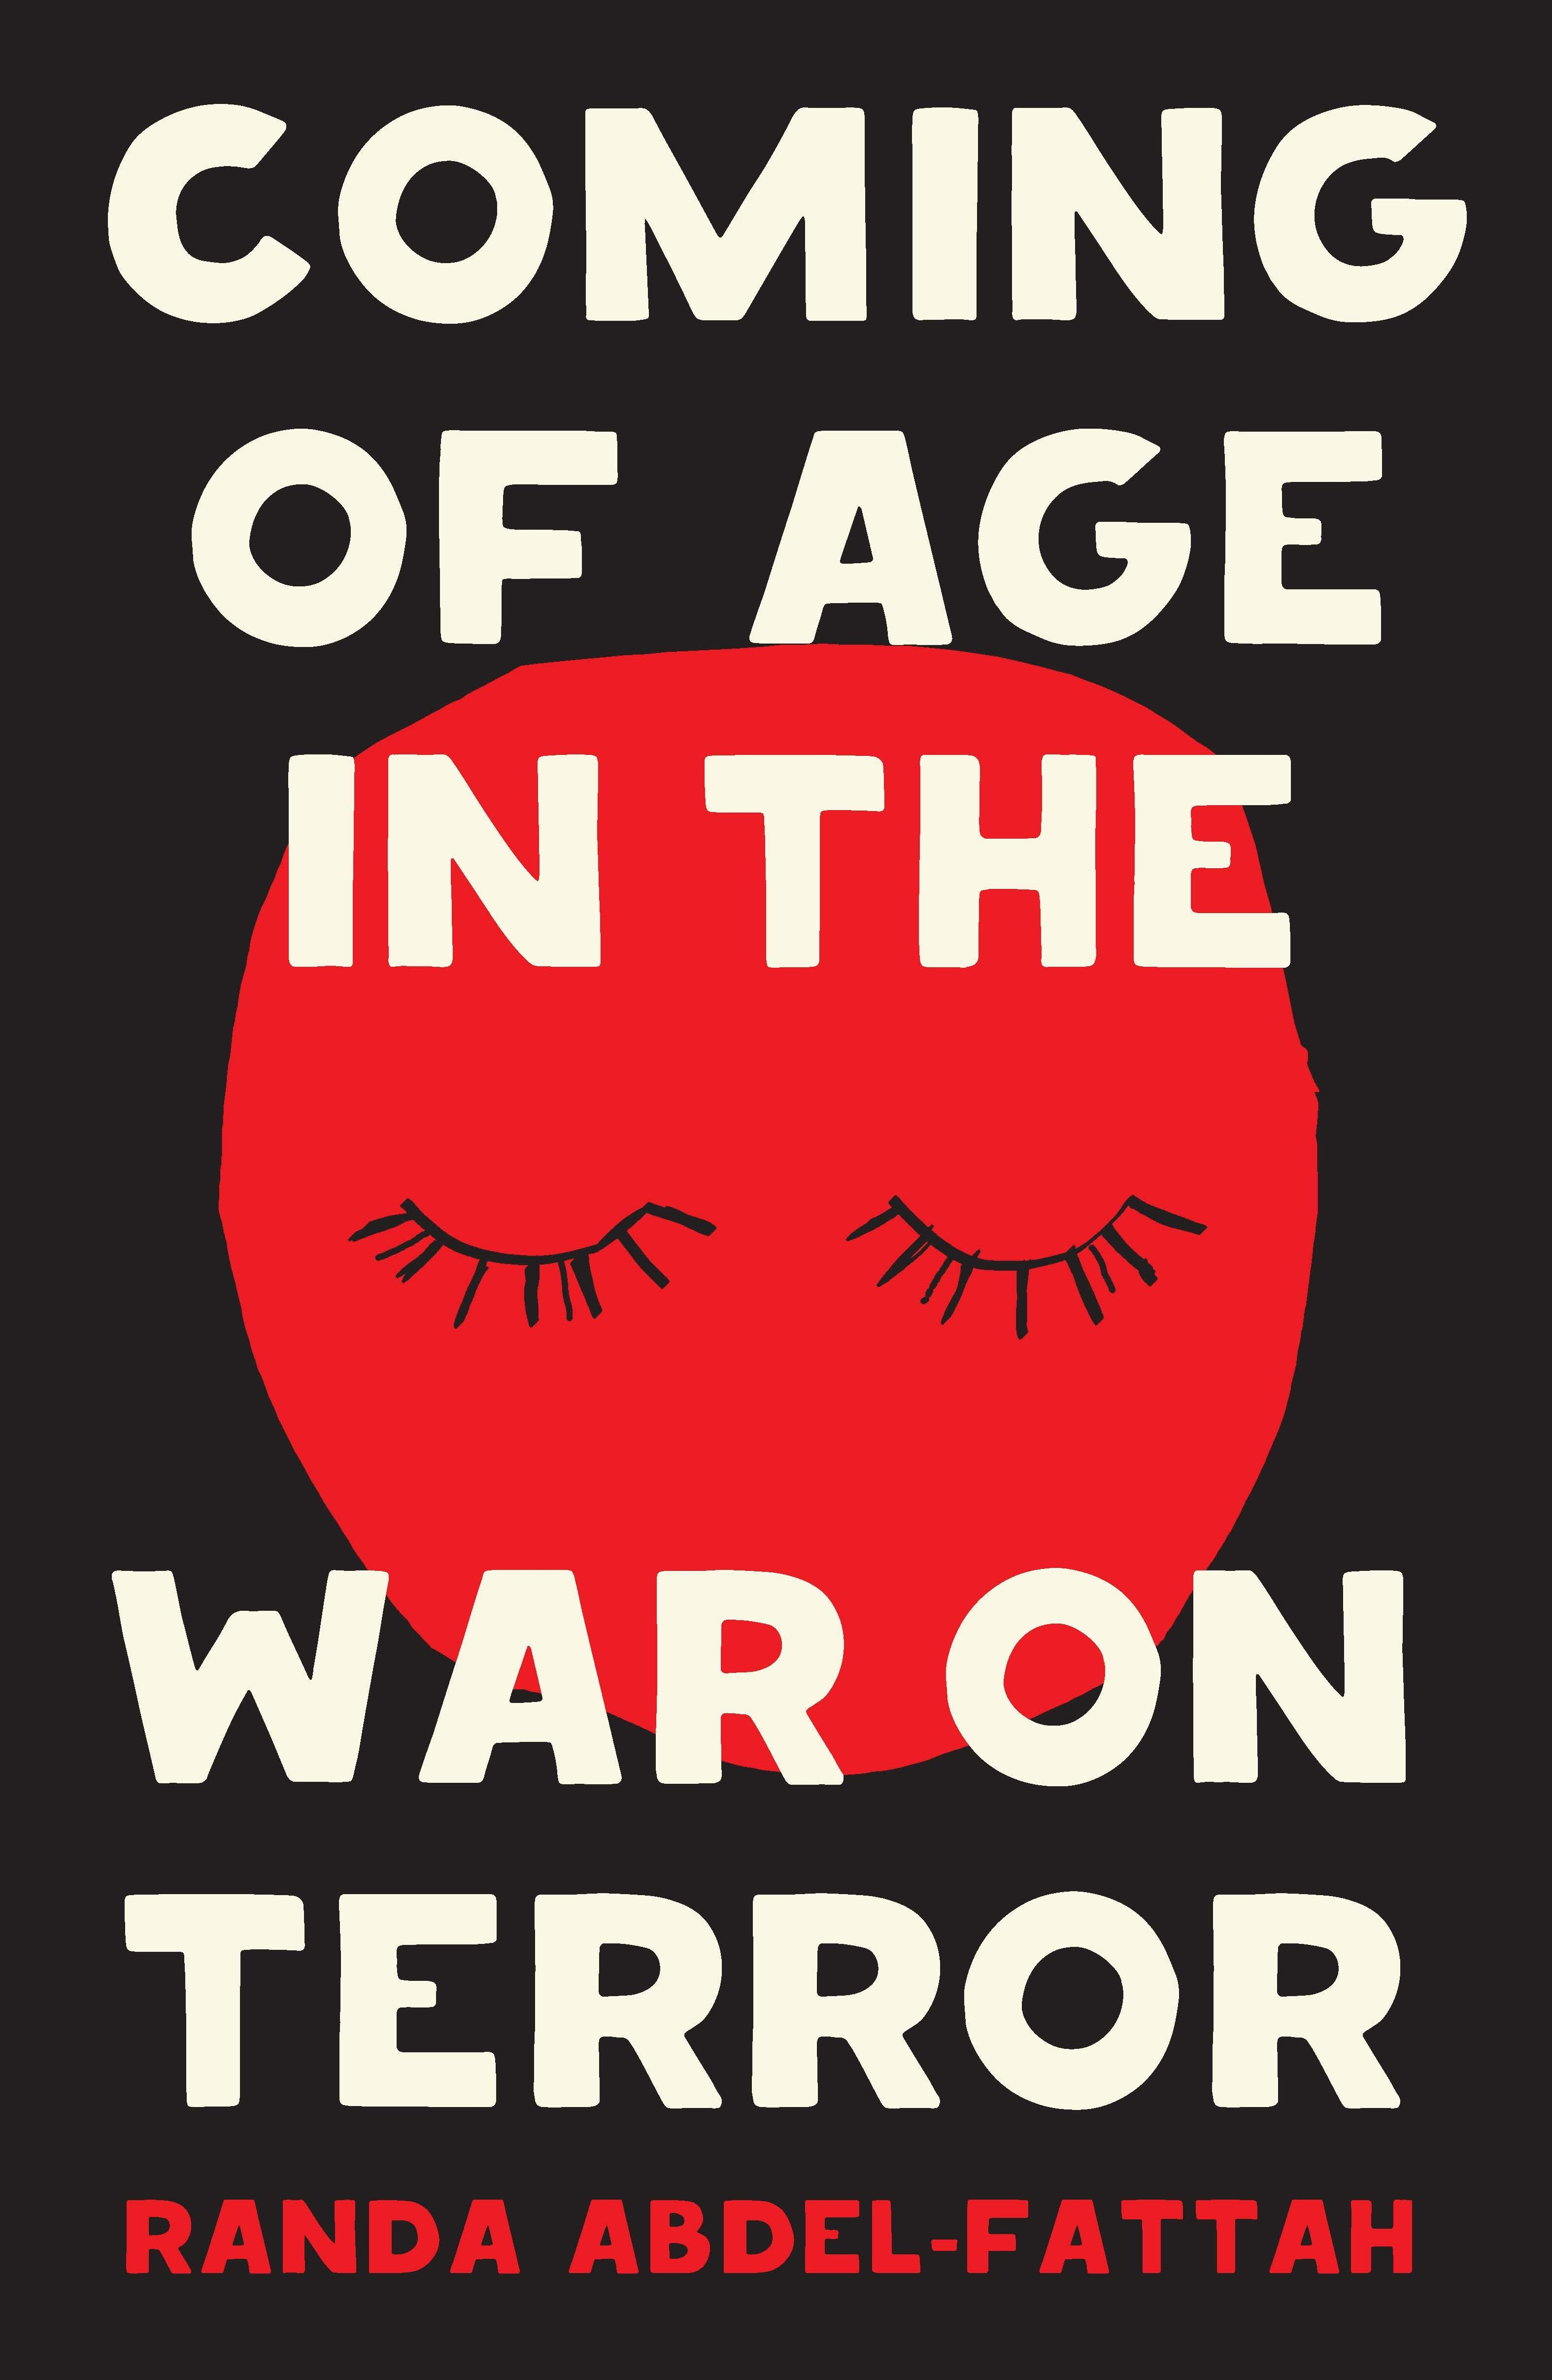 Coming of Age in the WaronTerror